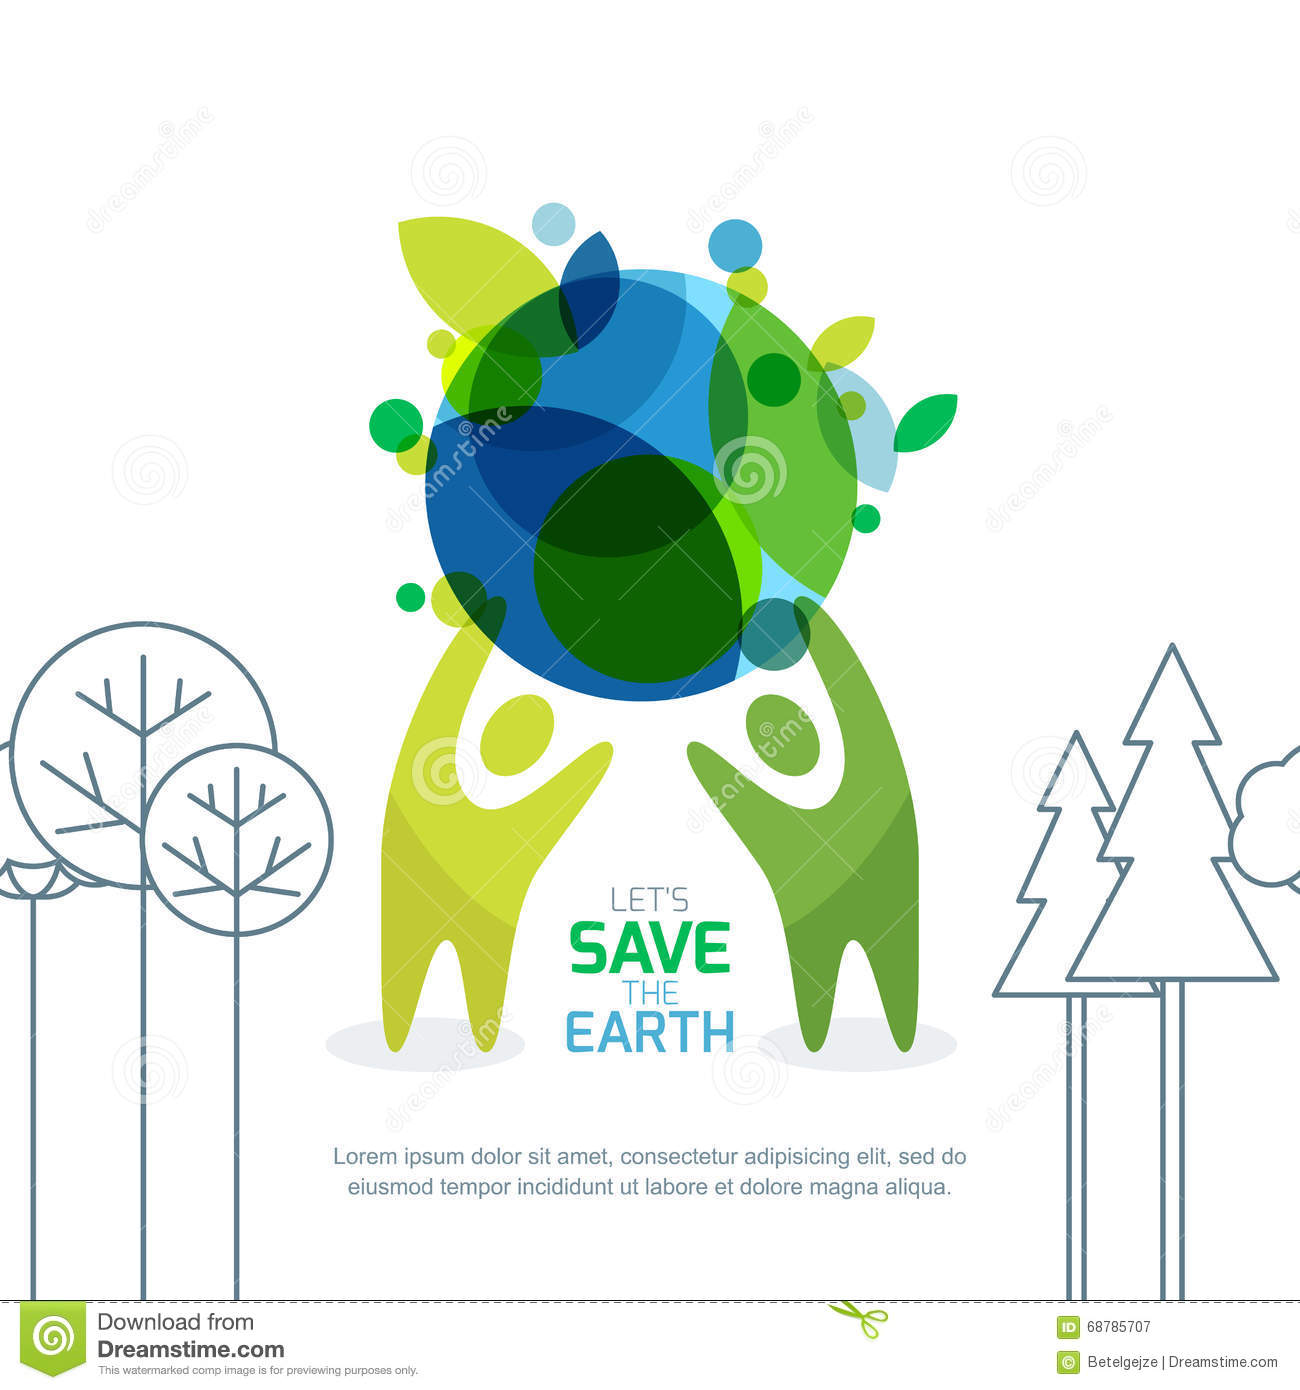 Poster design on save earth - Royalty Free Vector